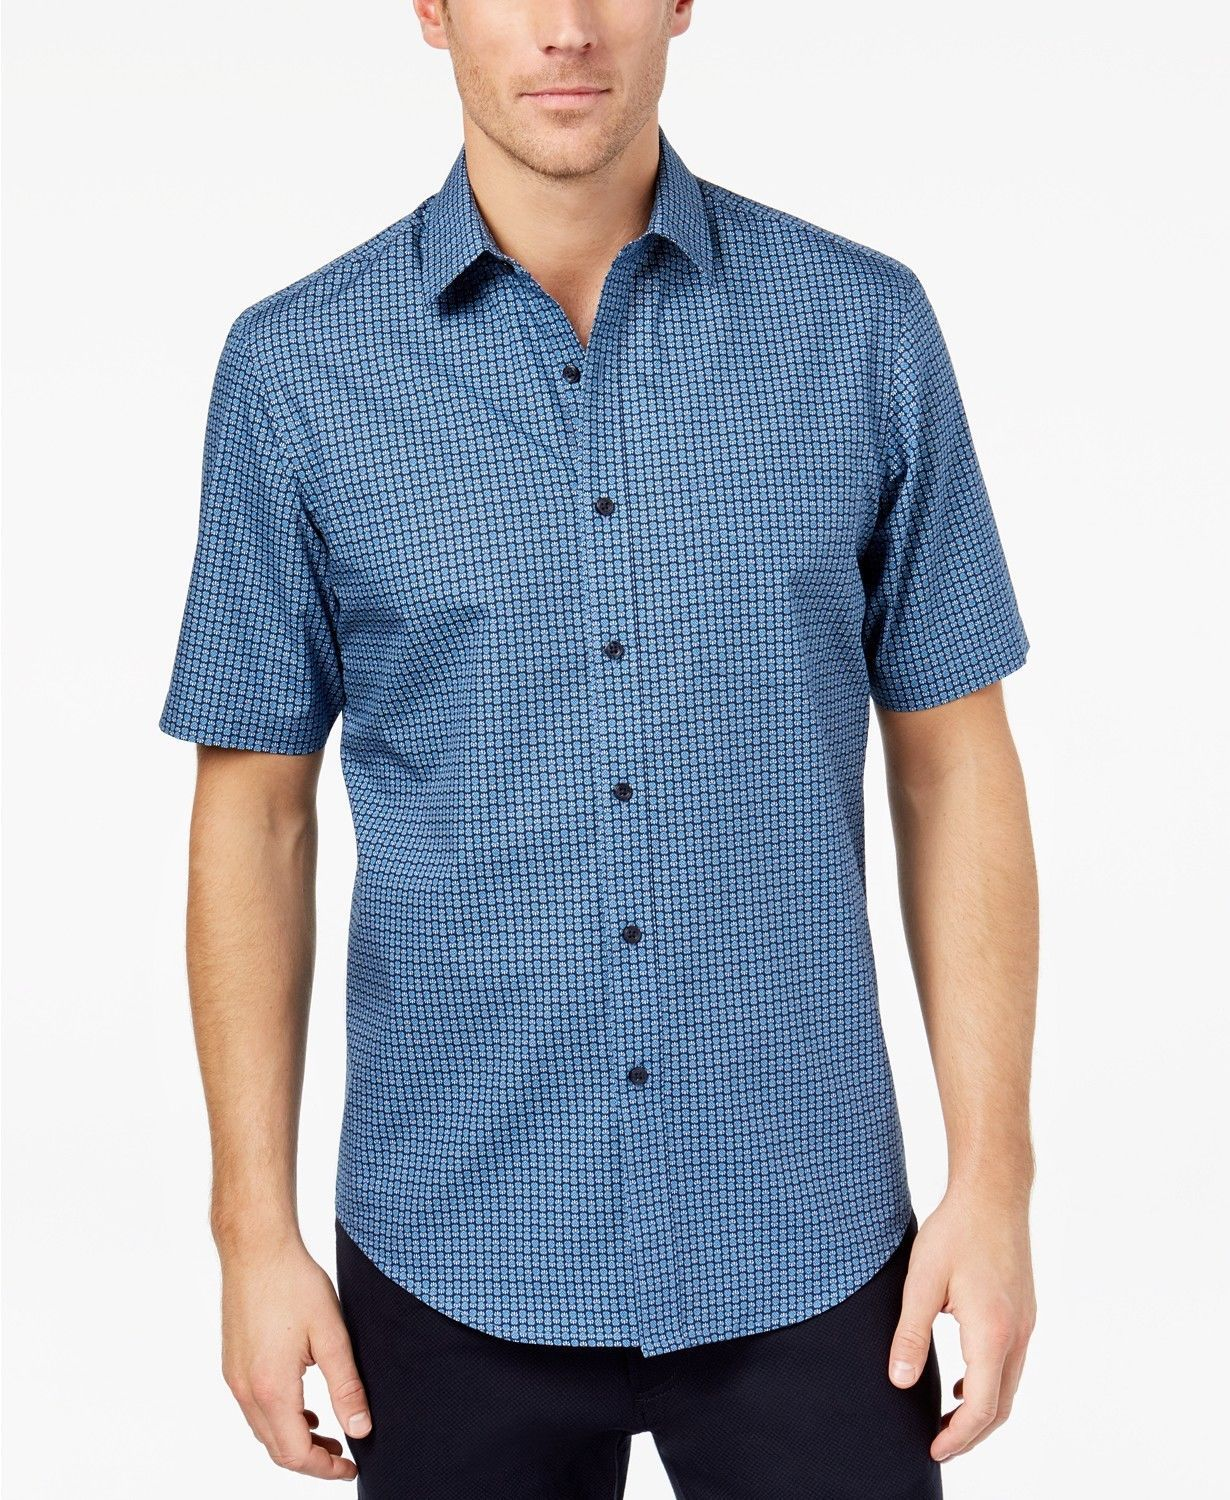 Primary image for NEW MENS CLUB ROOM SHORT SLEEVE PINEAPPLE PRINT NAVY BLUE BUTTON FRONT SHIRT S